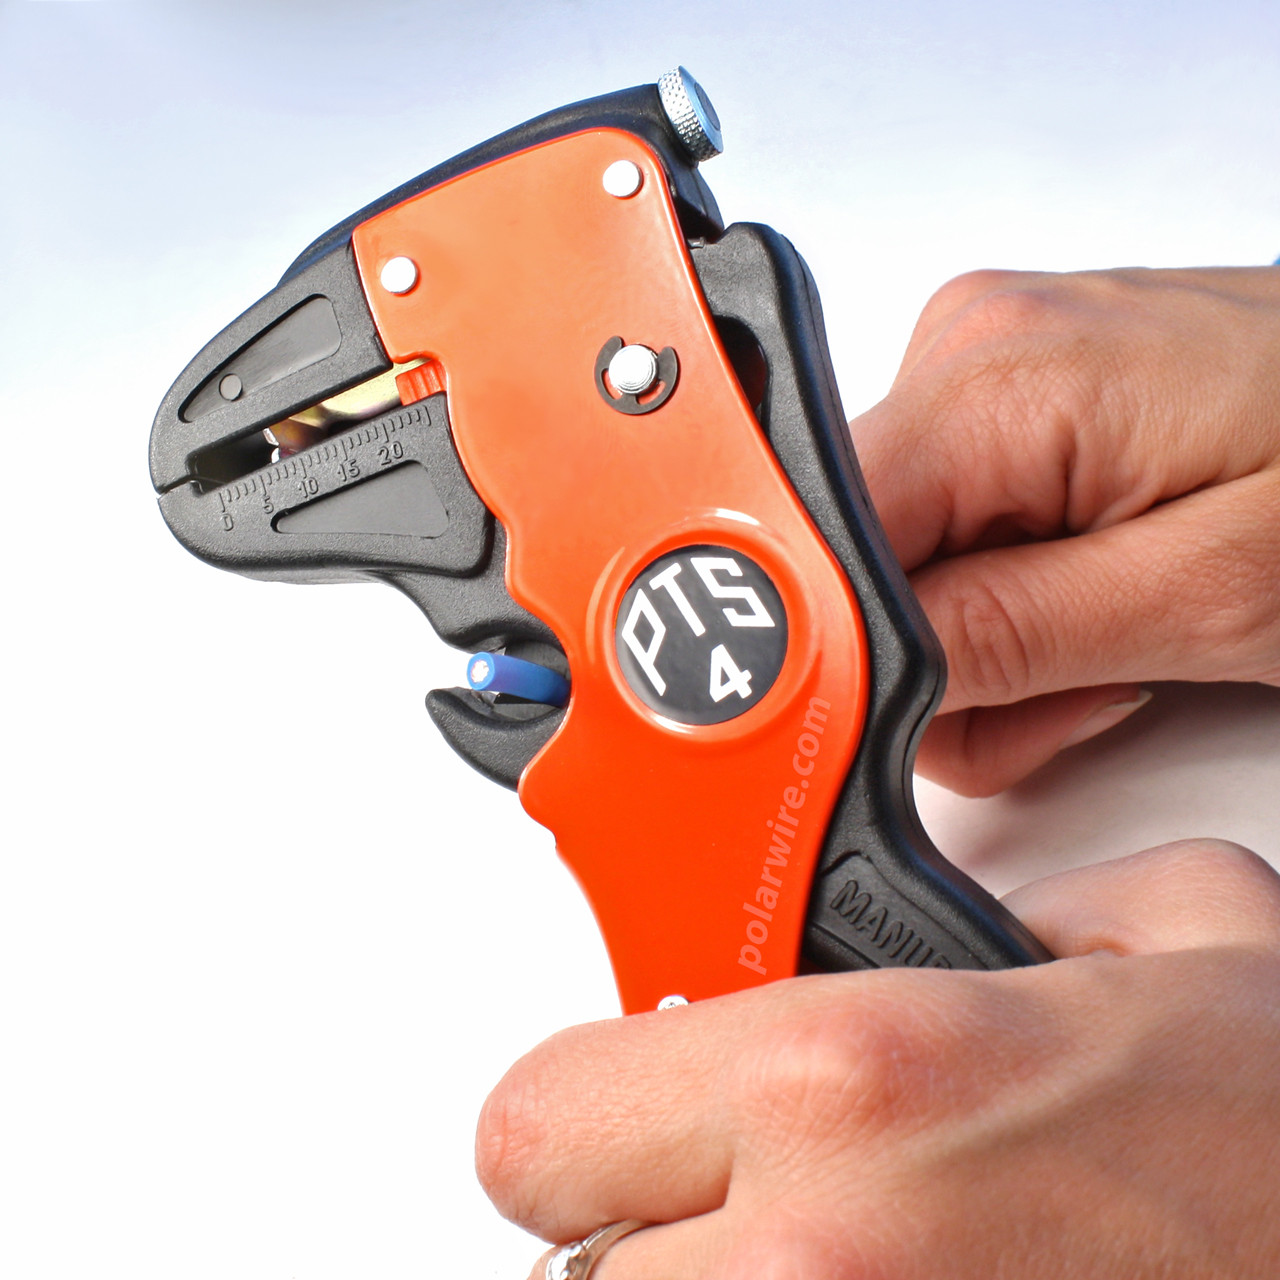 The PTS4 wire stripper features an integrated wire cutter with tempered steel blades